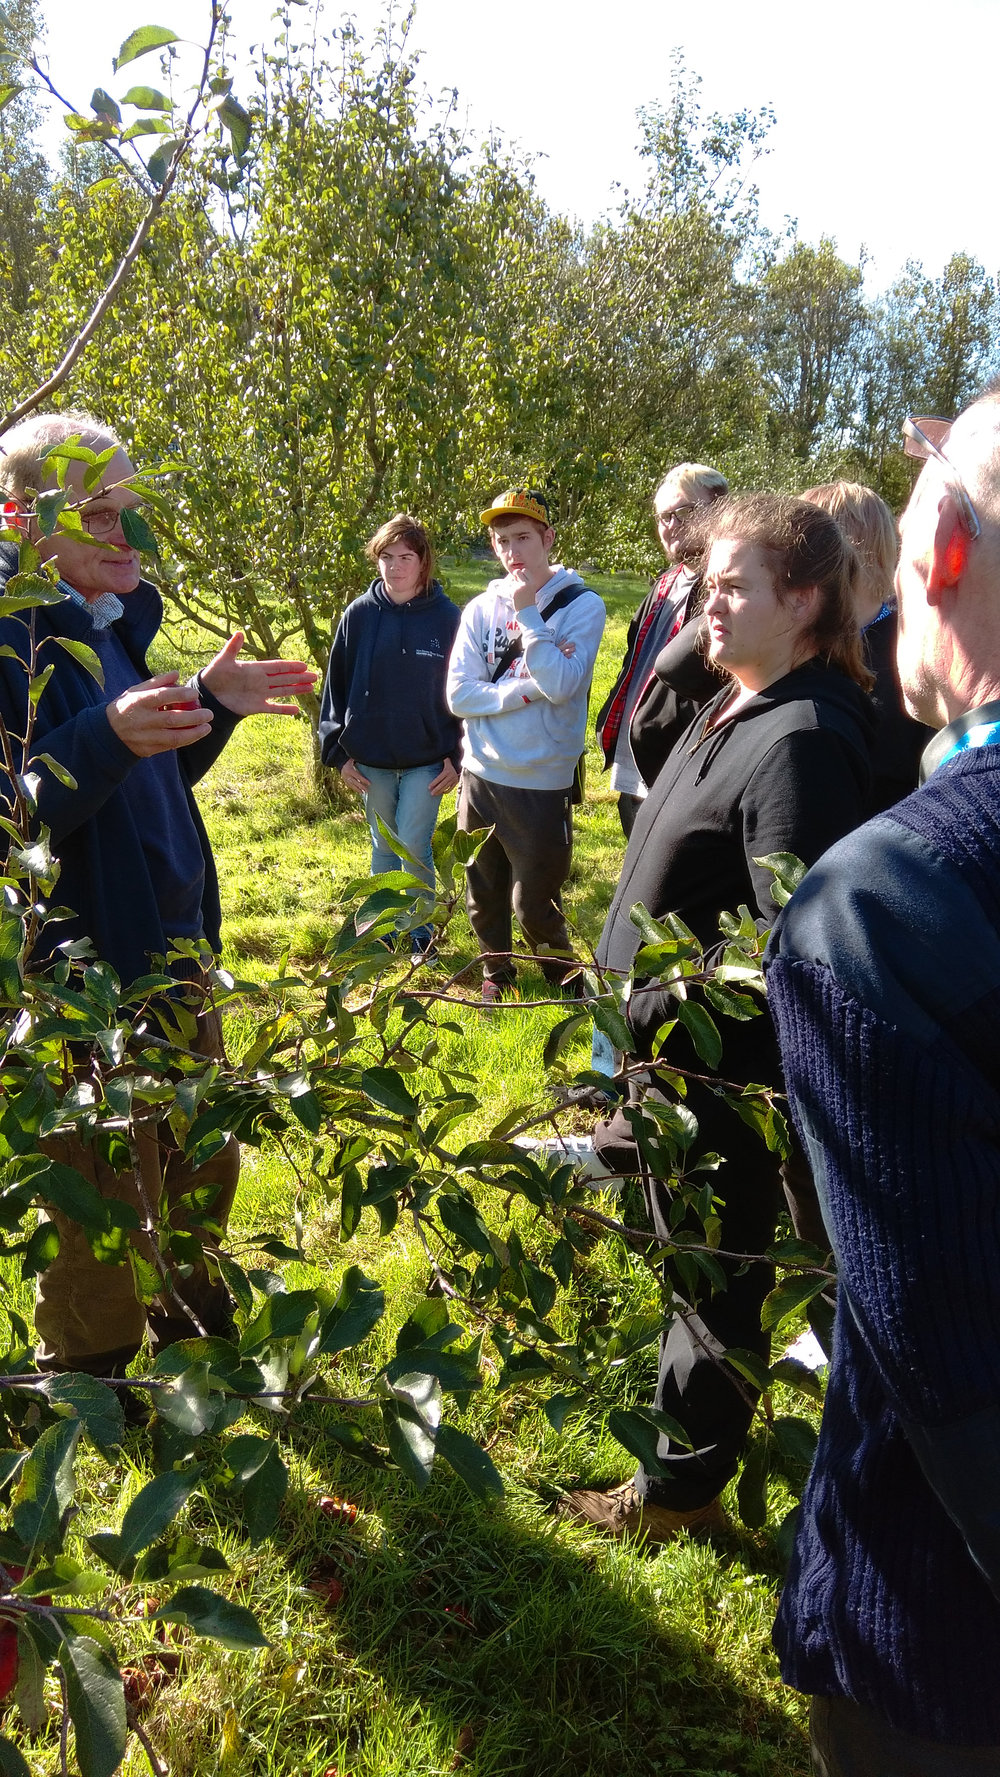 Peter May talking about apples and the history of the orchard